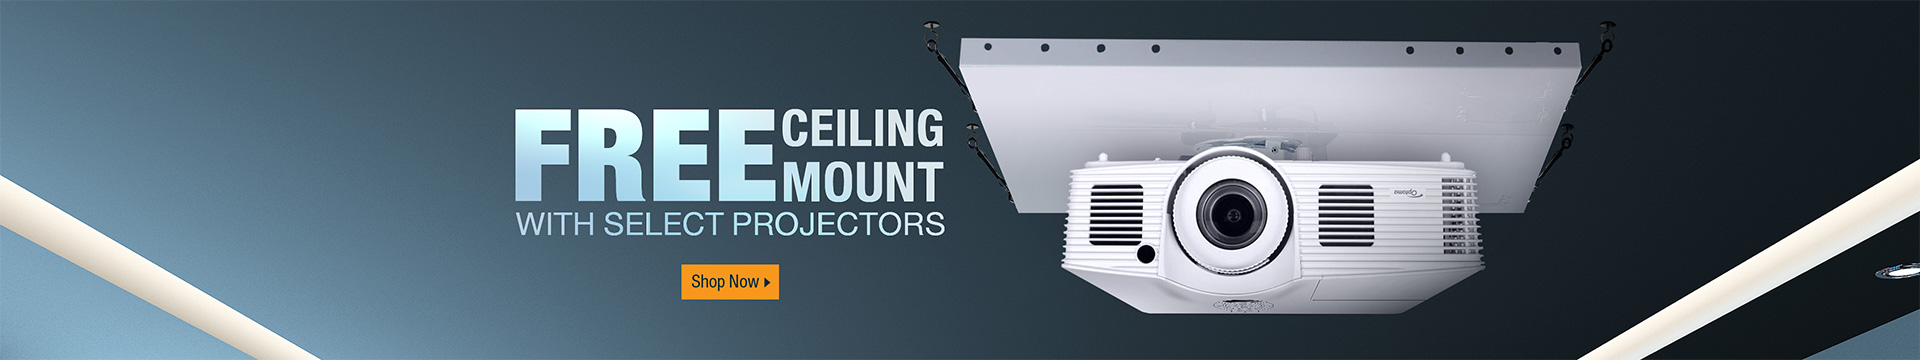 Free Ceiling Mount